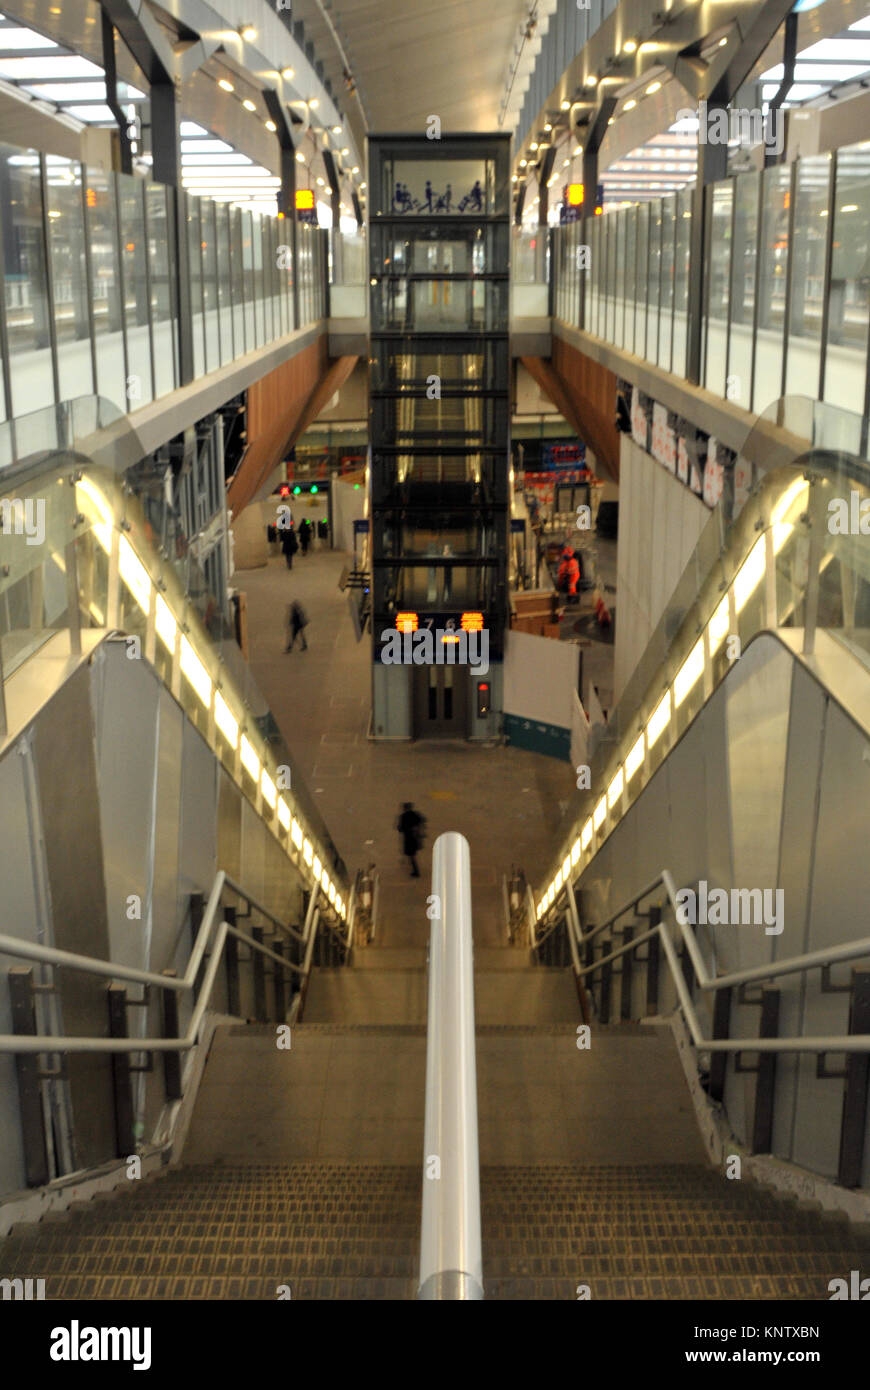 A flight of stairs or steps at the new London Bridge railway station in central london. New buildings and construction - Stock Image